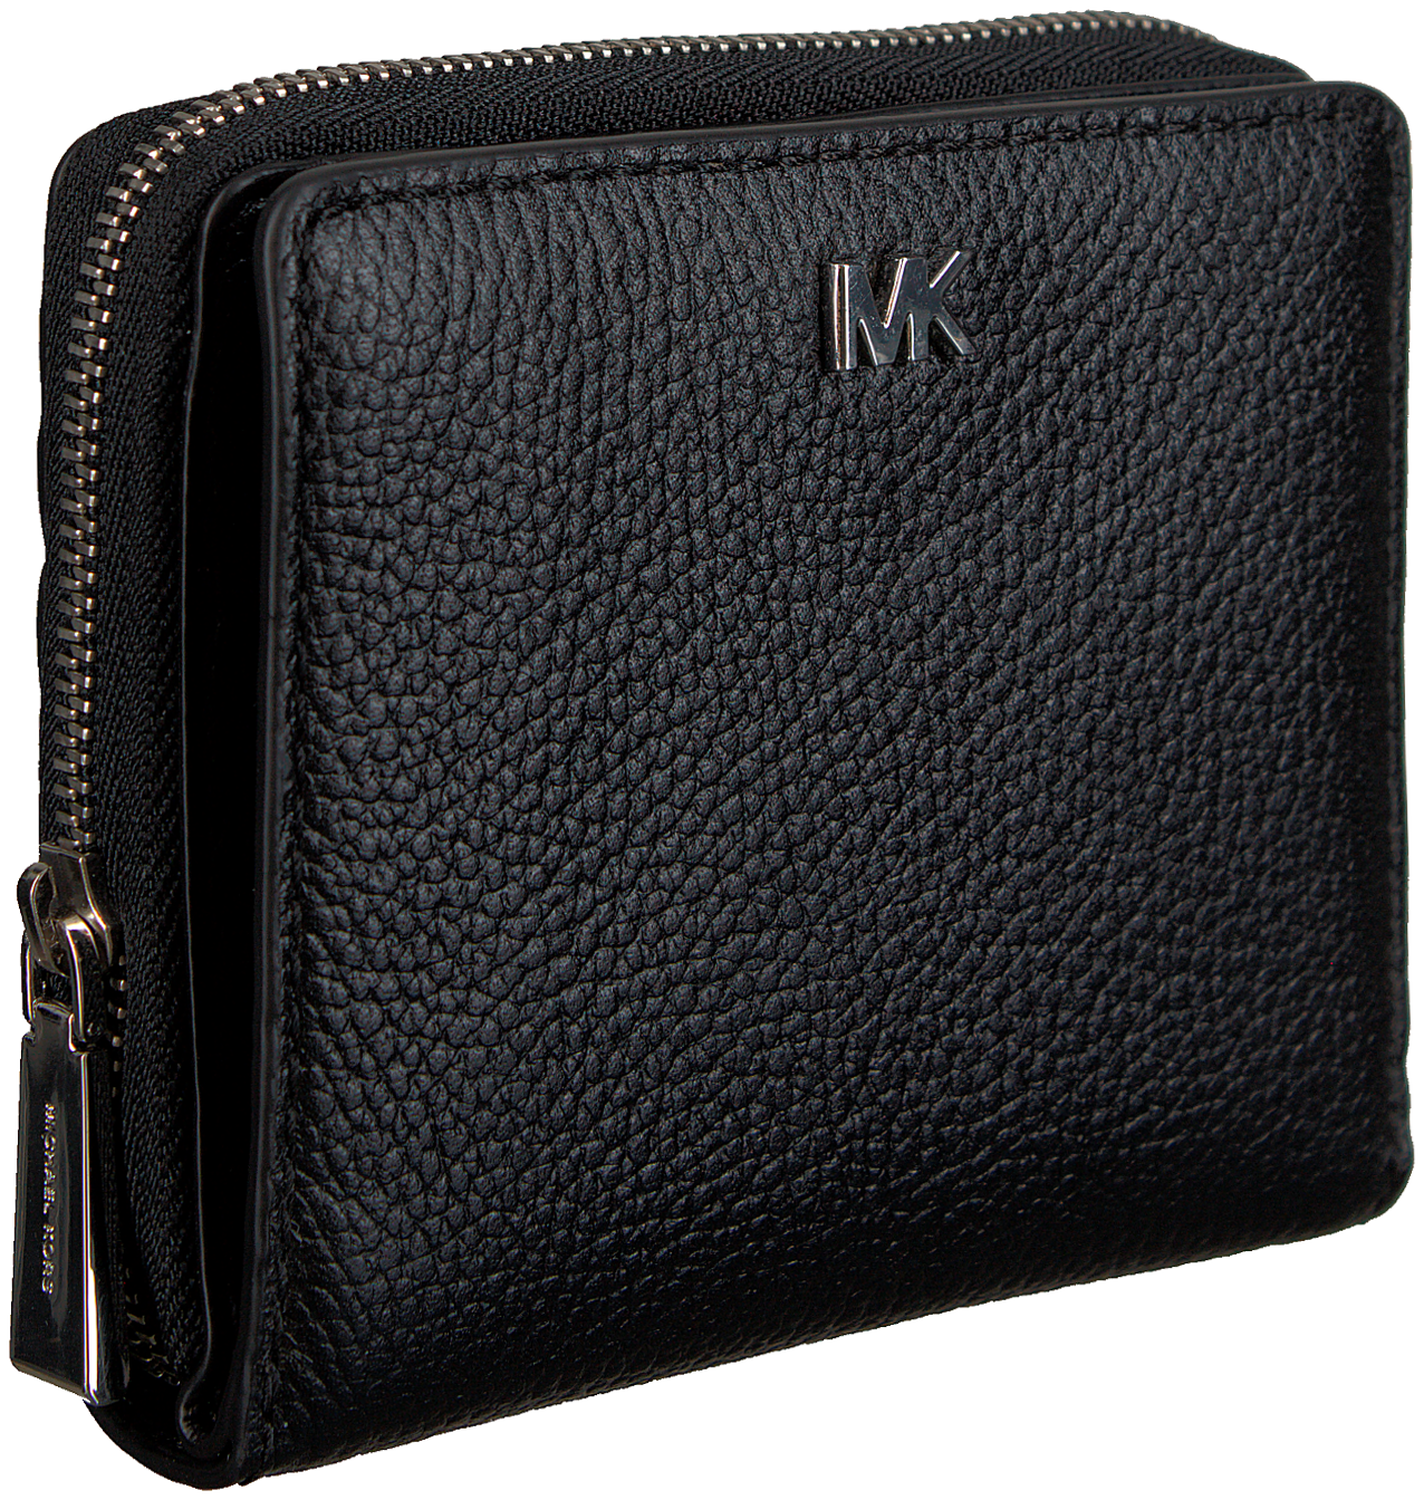 Michael Kors Heren Portemonnee.Michael Kors Portemonnee Money Pieces Za Snap Wallet Omoda Nl